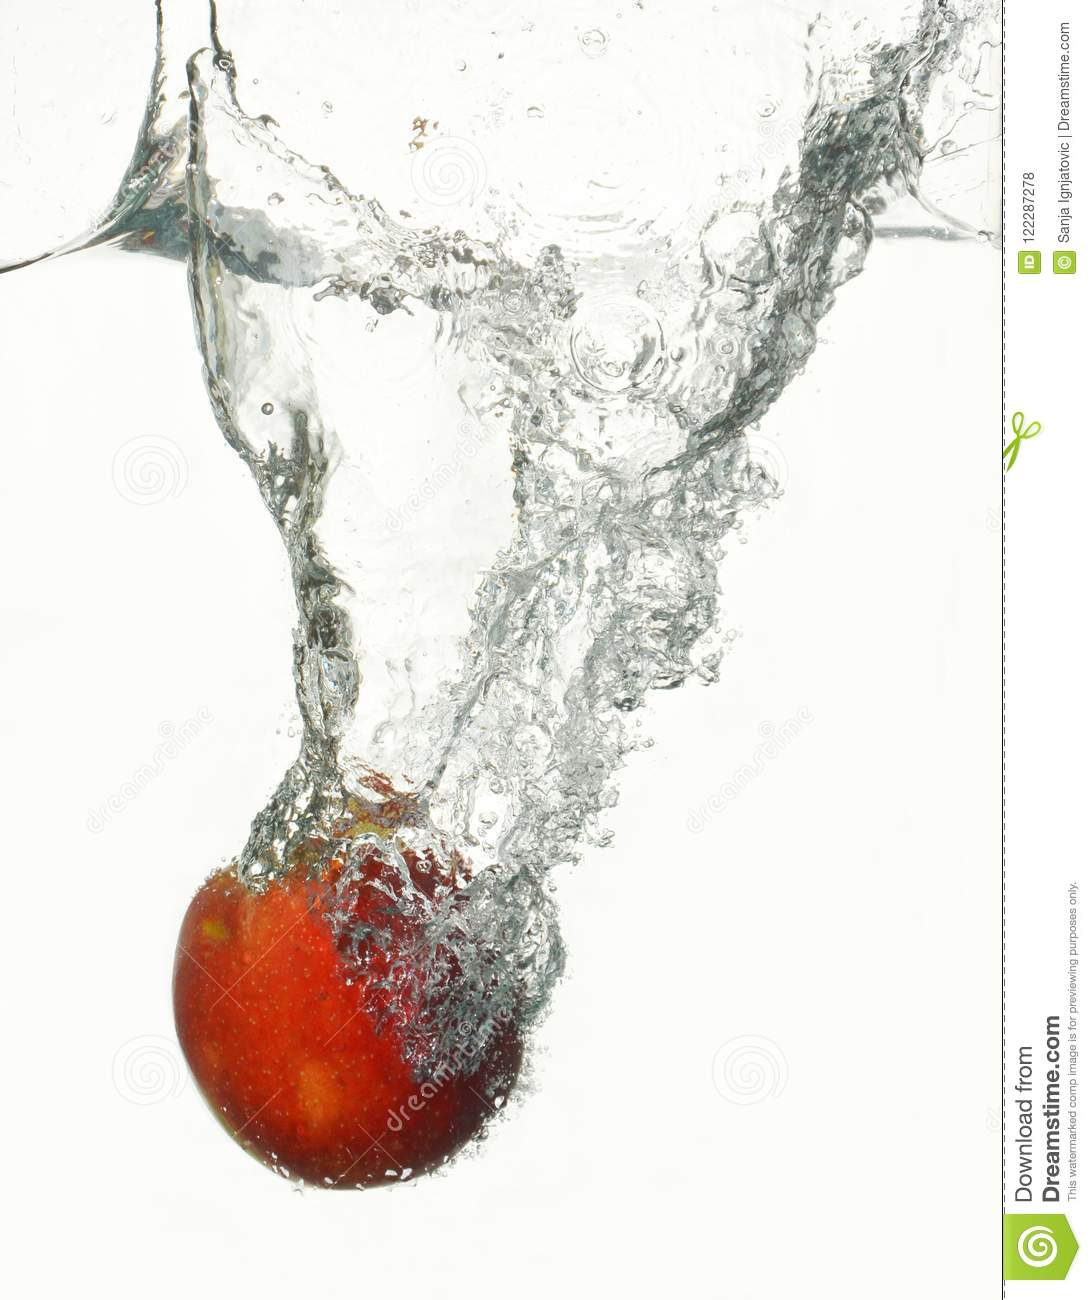 High-speed red apple